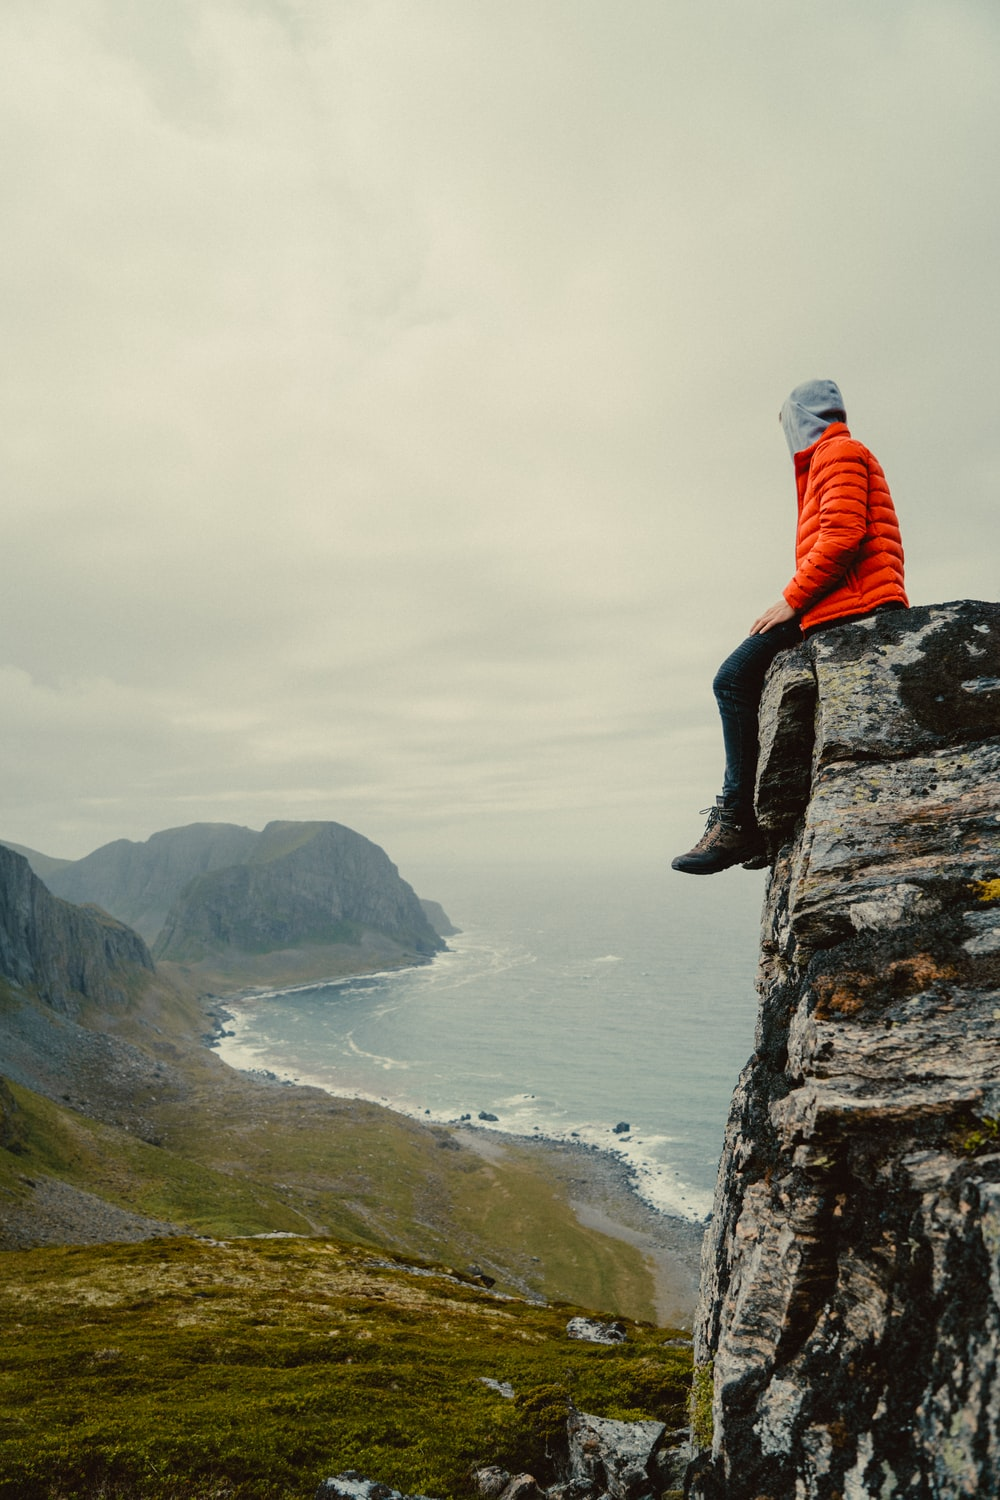 man in red hoodie sitting on rock formation near body of water during daytime